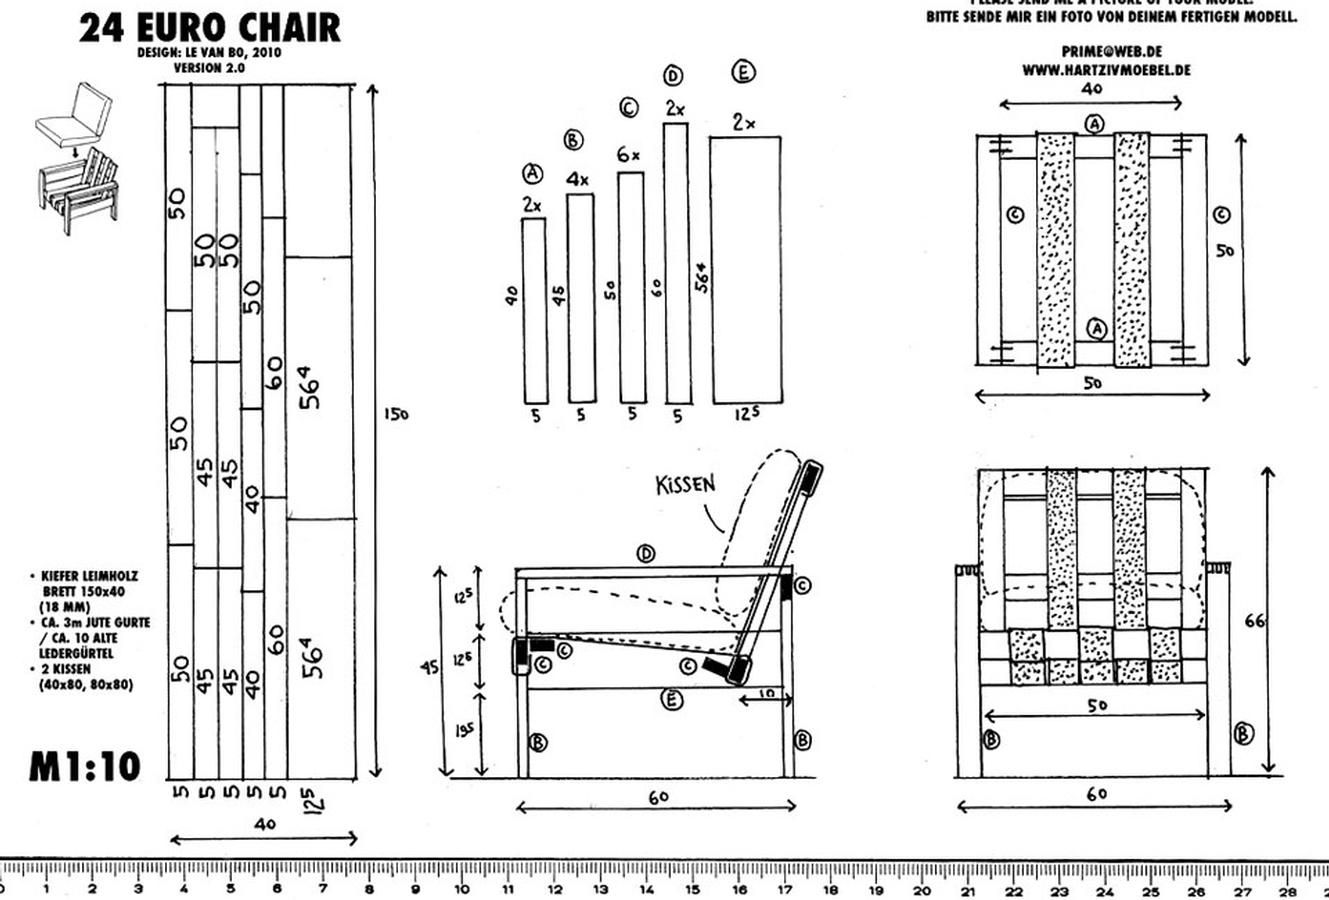 drawings and assembly instructions for diy furniture by van bo le